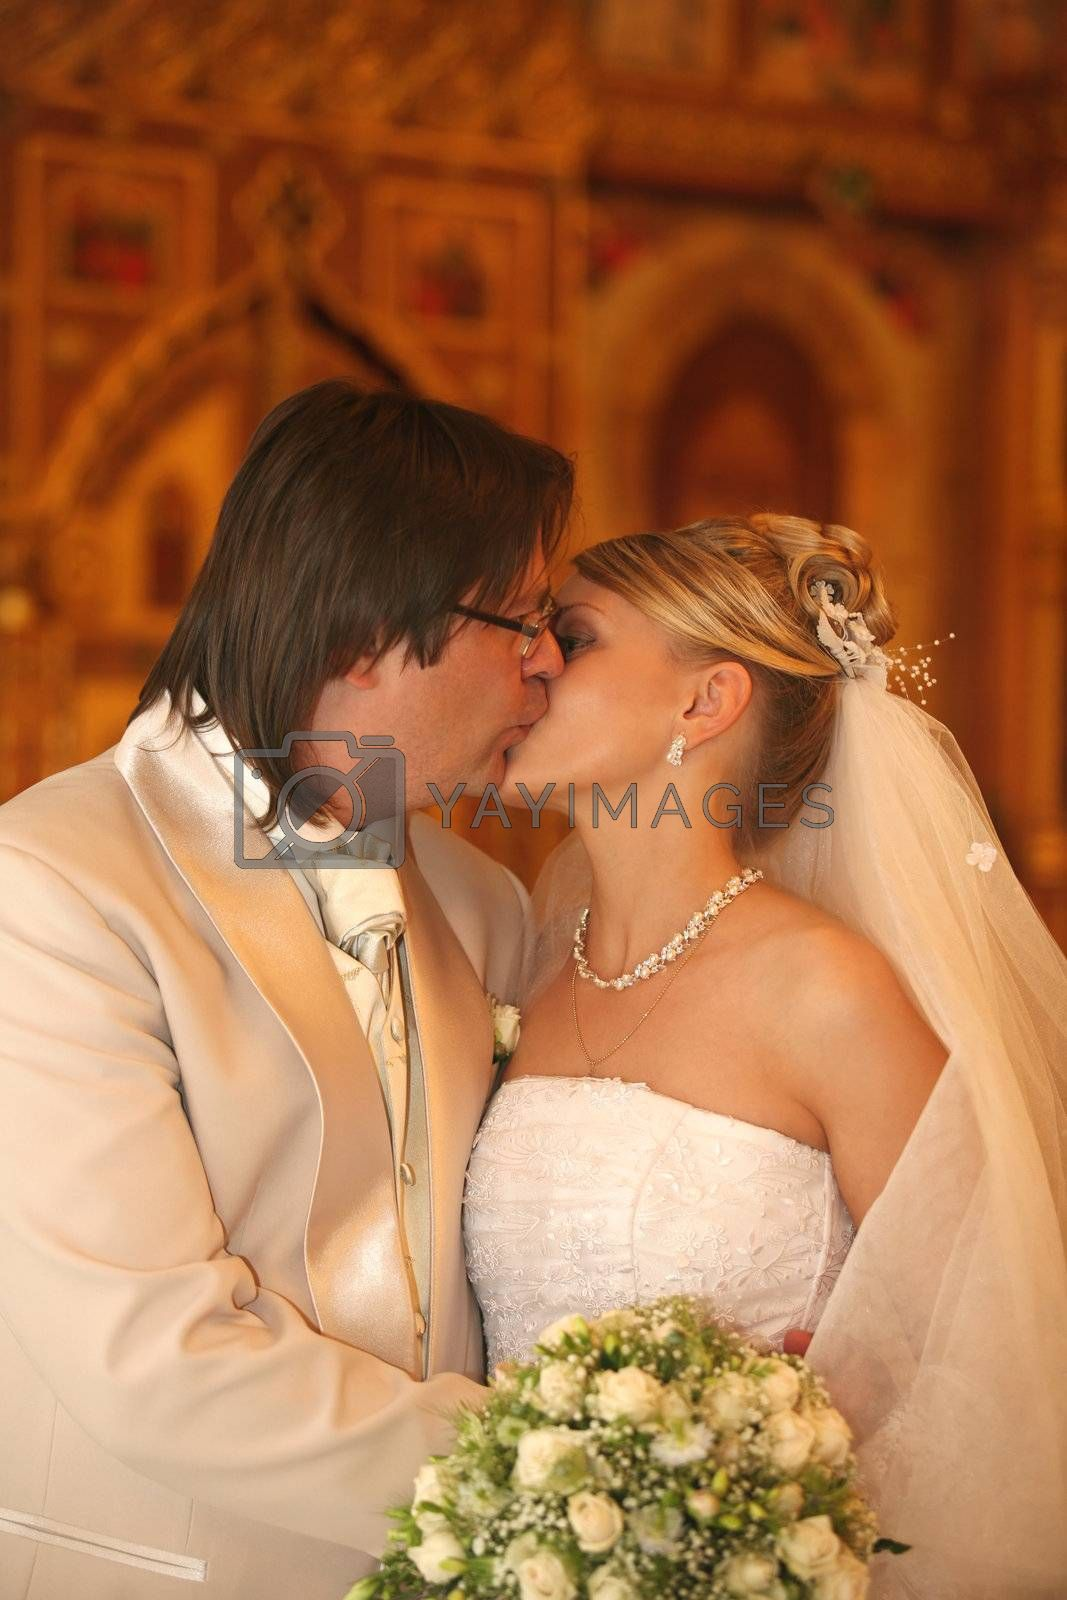 The groom and the bride kiss in church